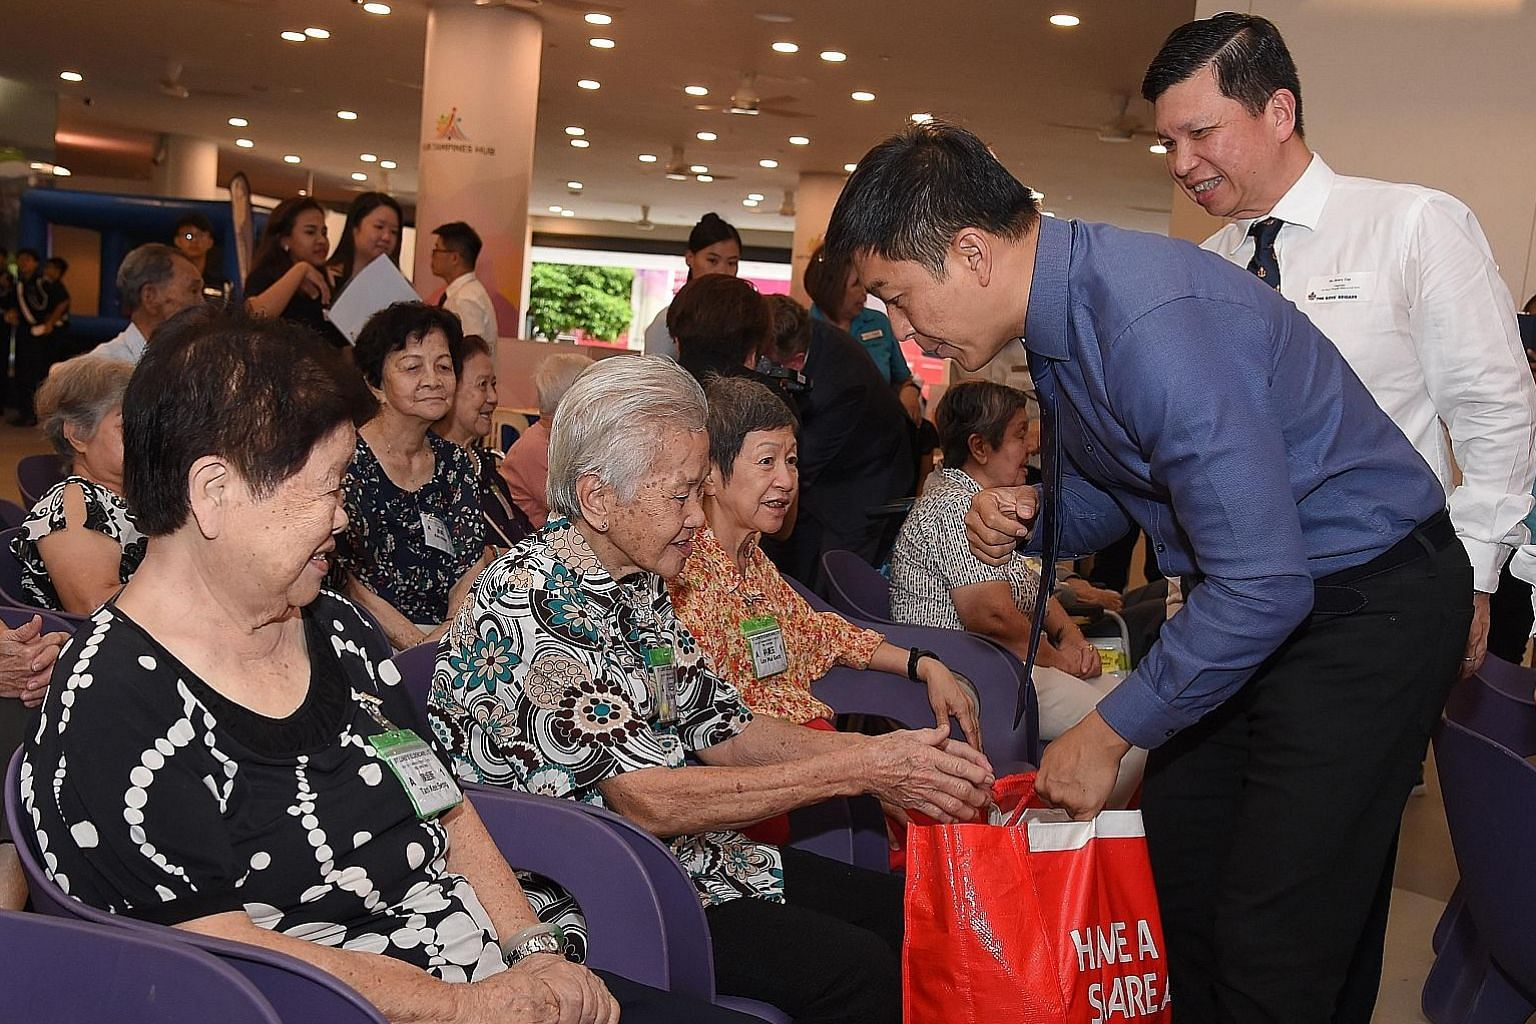 Speaker of Parliament Tan Chuan-Jin distributing food hampers to elderly beneficiaries at the launch of the 2019 Boys' Brigade Share-a-Gift charity drive at Our Tampines Hub.